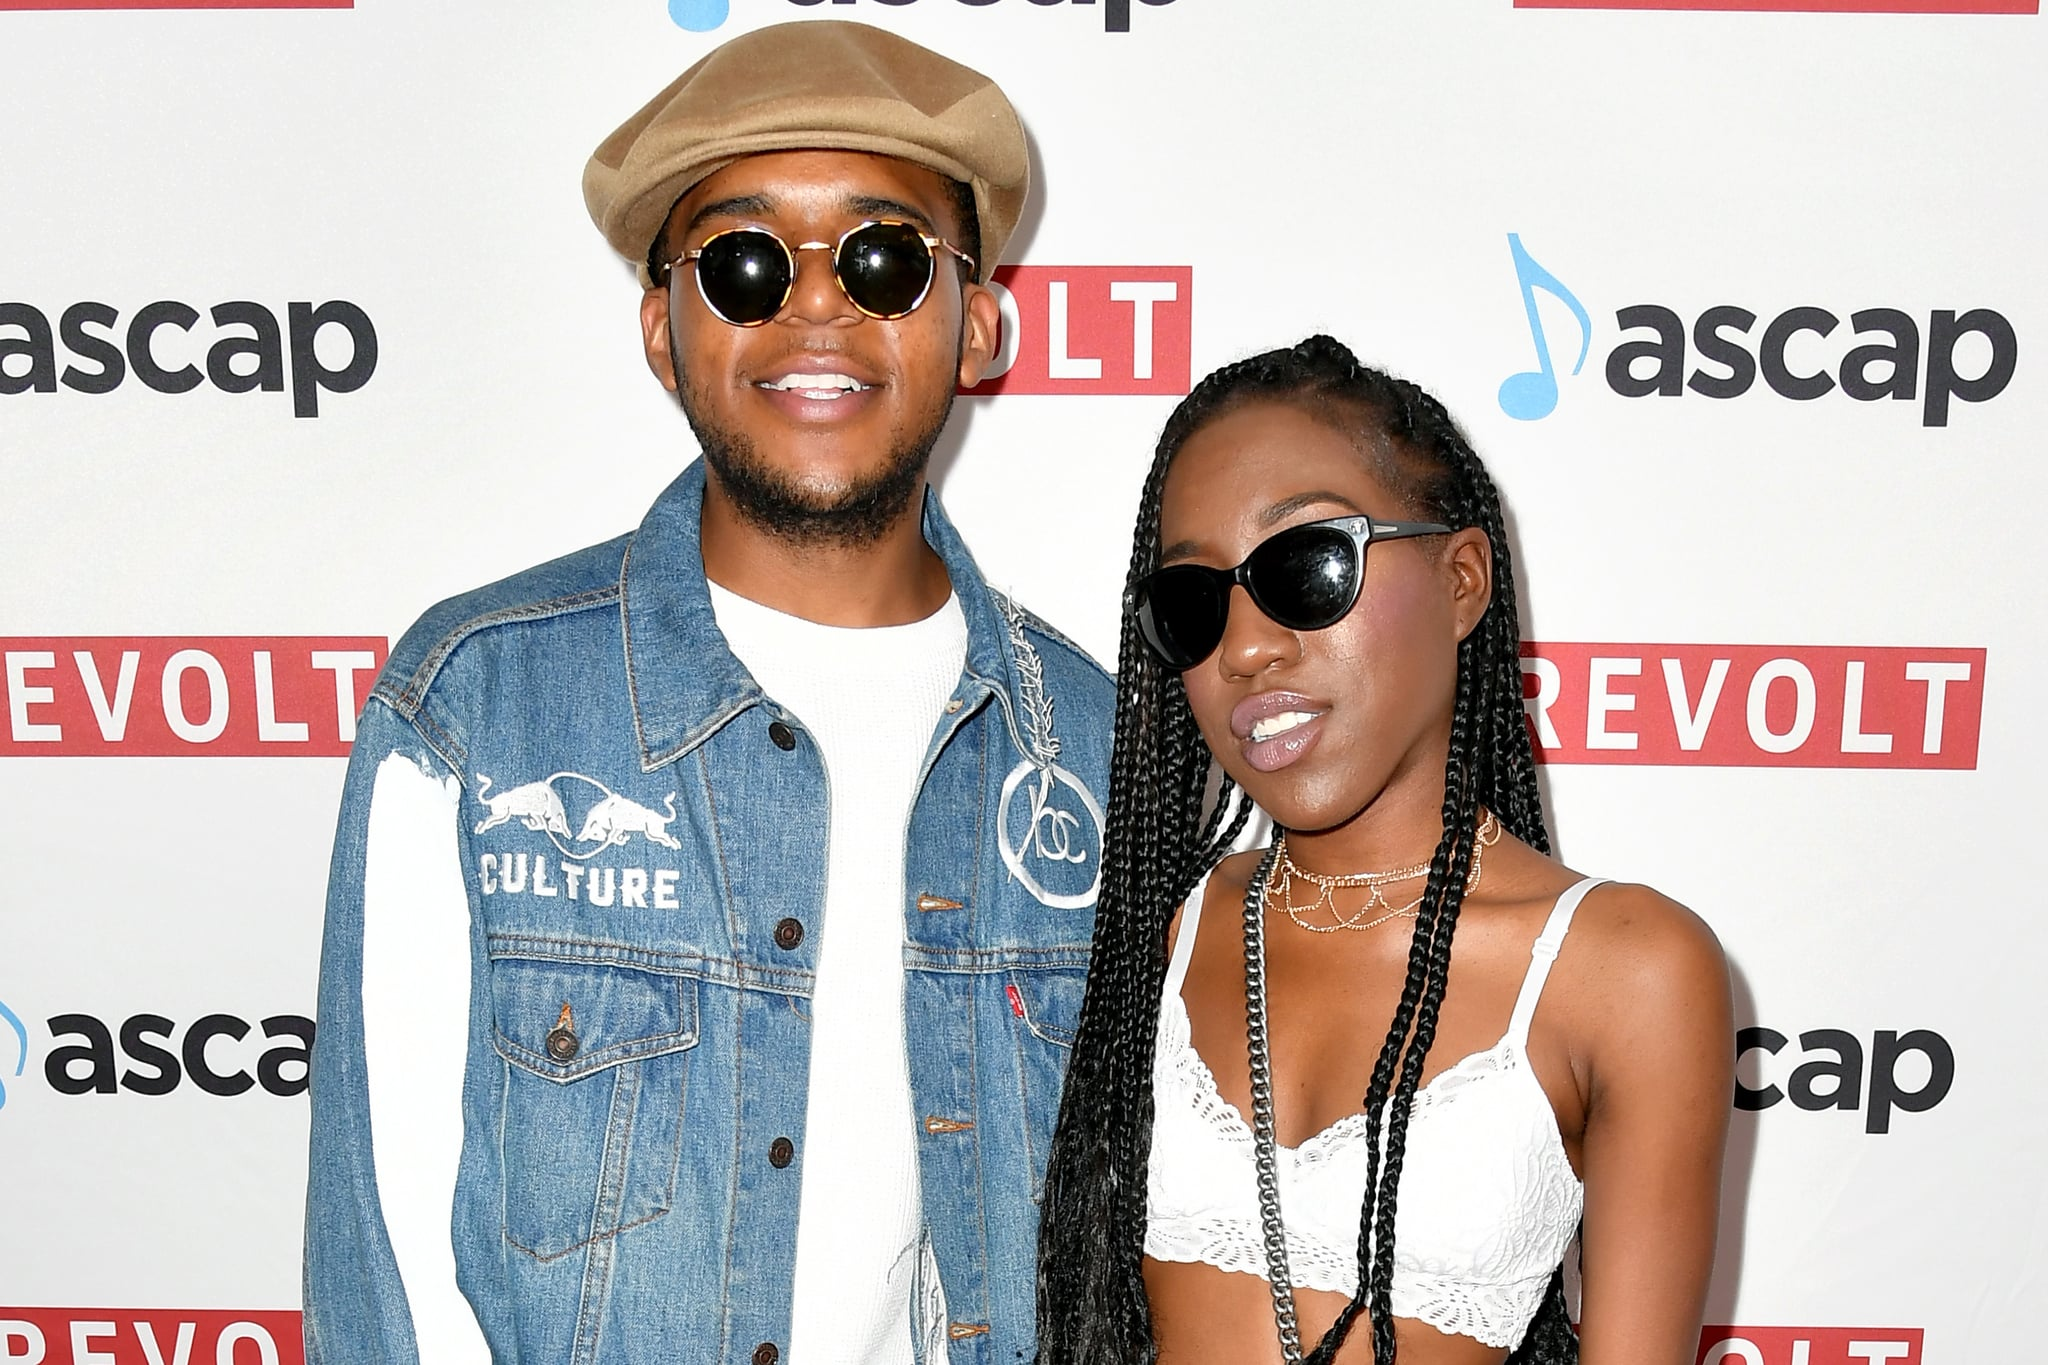 BEVERLY HILLS, CA - JUNE 22:  C.J. Wallace (L) and T'yanna Wallace at the ASCAP 2017 Rhythm & Soul Music Awards at the Beverly Wilshire Four Seasons Hotel on June 22, 2017 in Beverly Hills, California.  (Photo by Earl Gibson III/Getty Images for ASCAP)